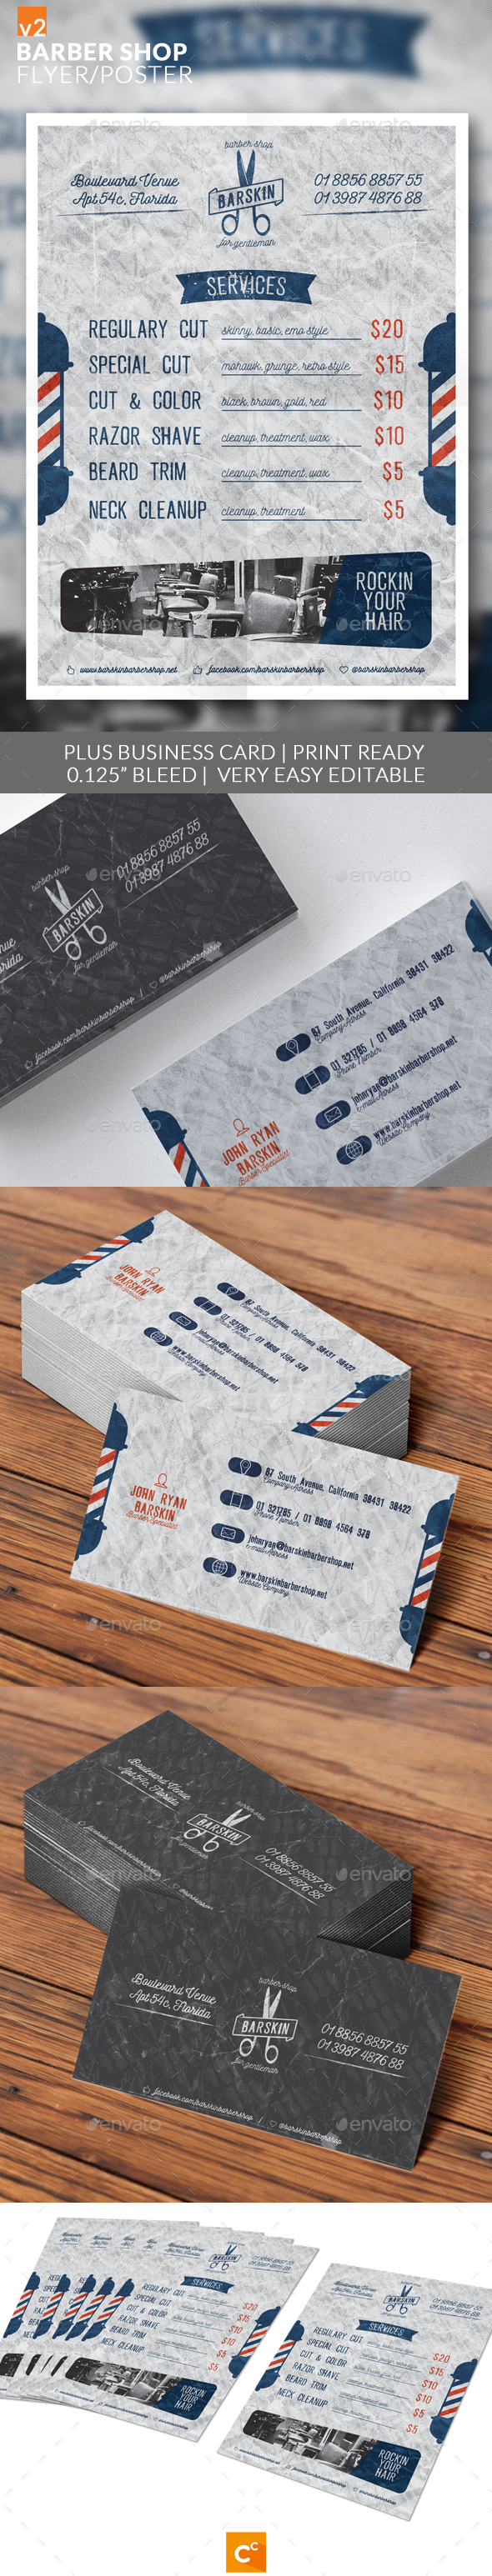 Barber Shop Flyer/Poster v2 - Flyers Print Templates